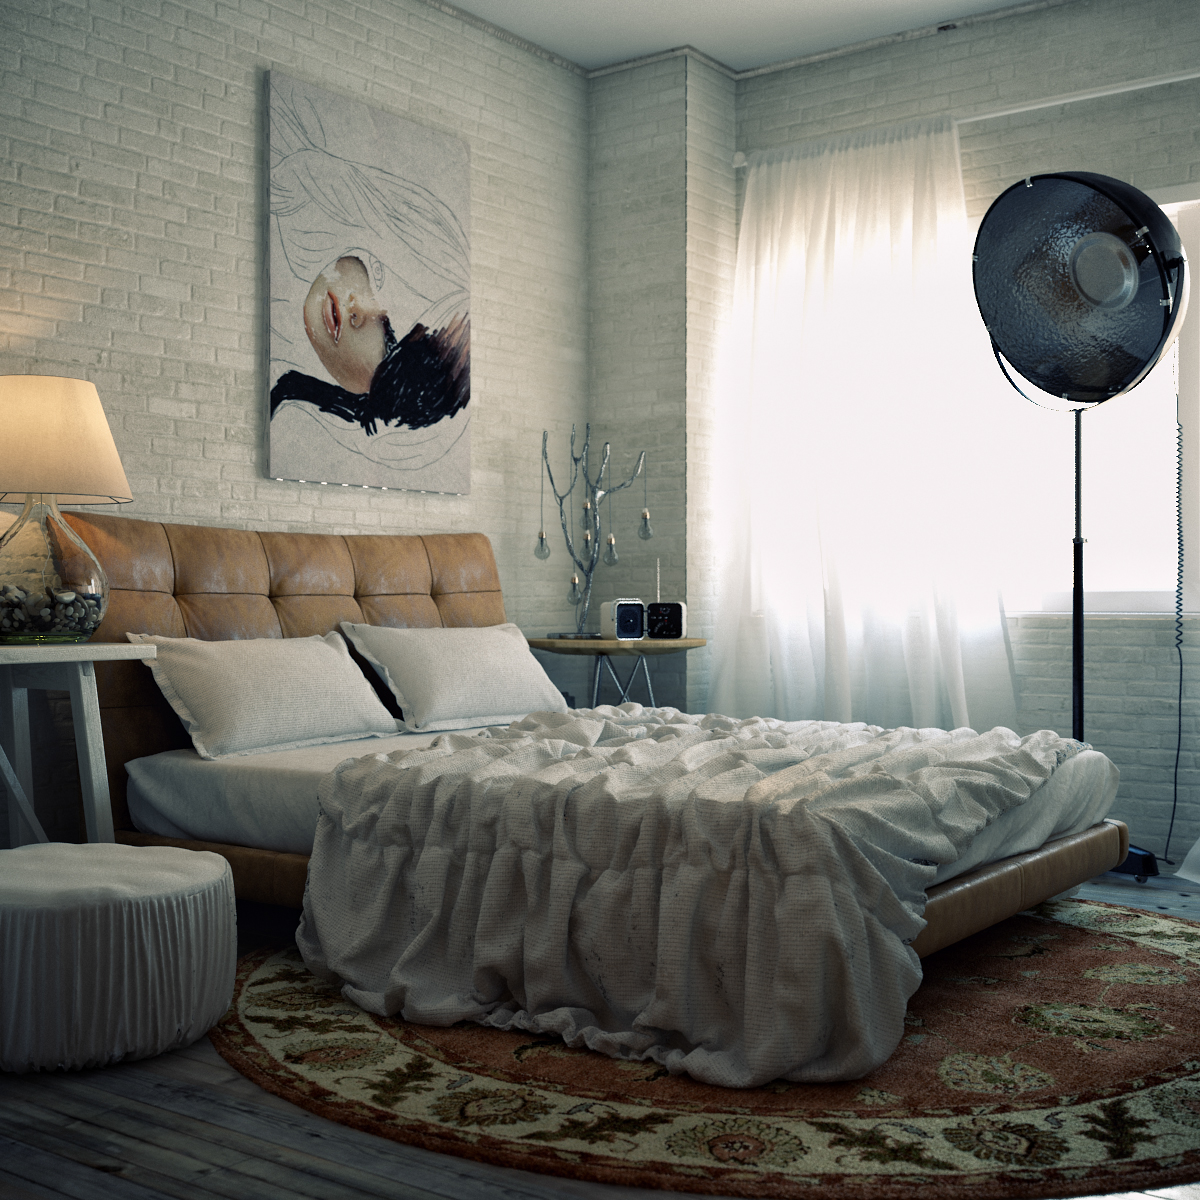 Minimalist Bedroom Decor Ideas: Variety Of Minimalist Bedroom Designs Look So Trendy With